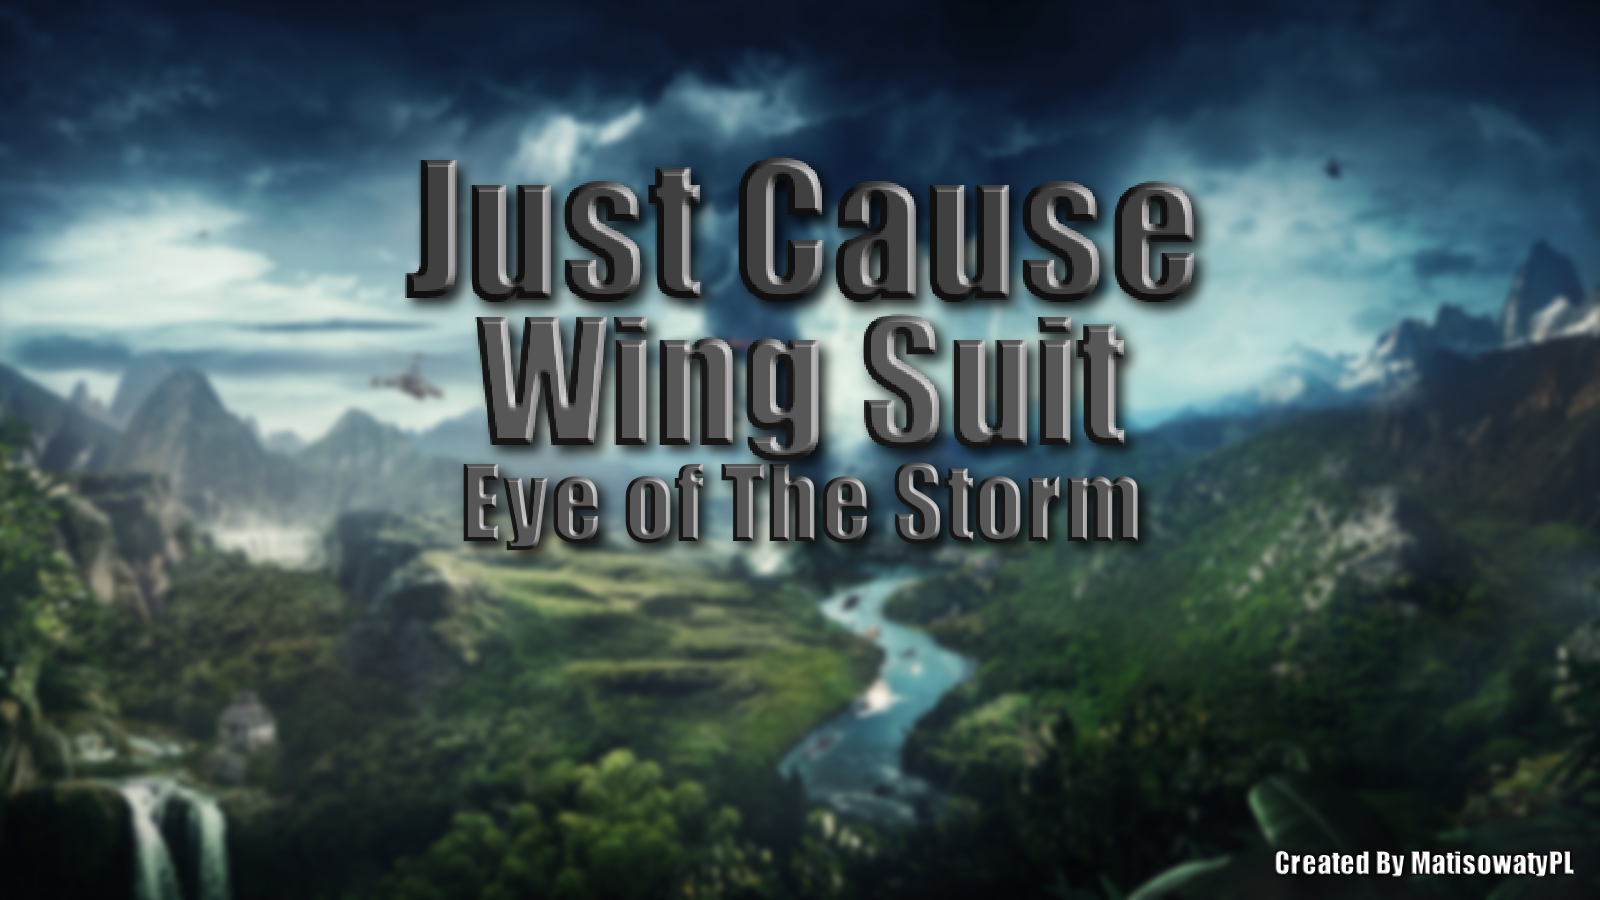 Just Cause 3 Eye of The Storm Wing Suit